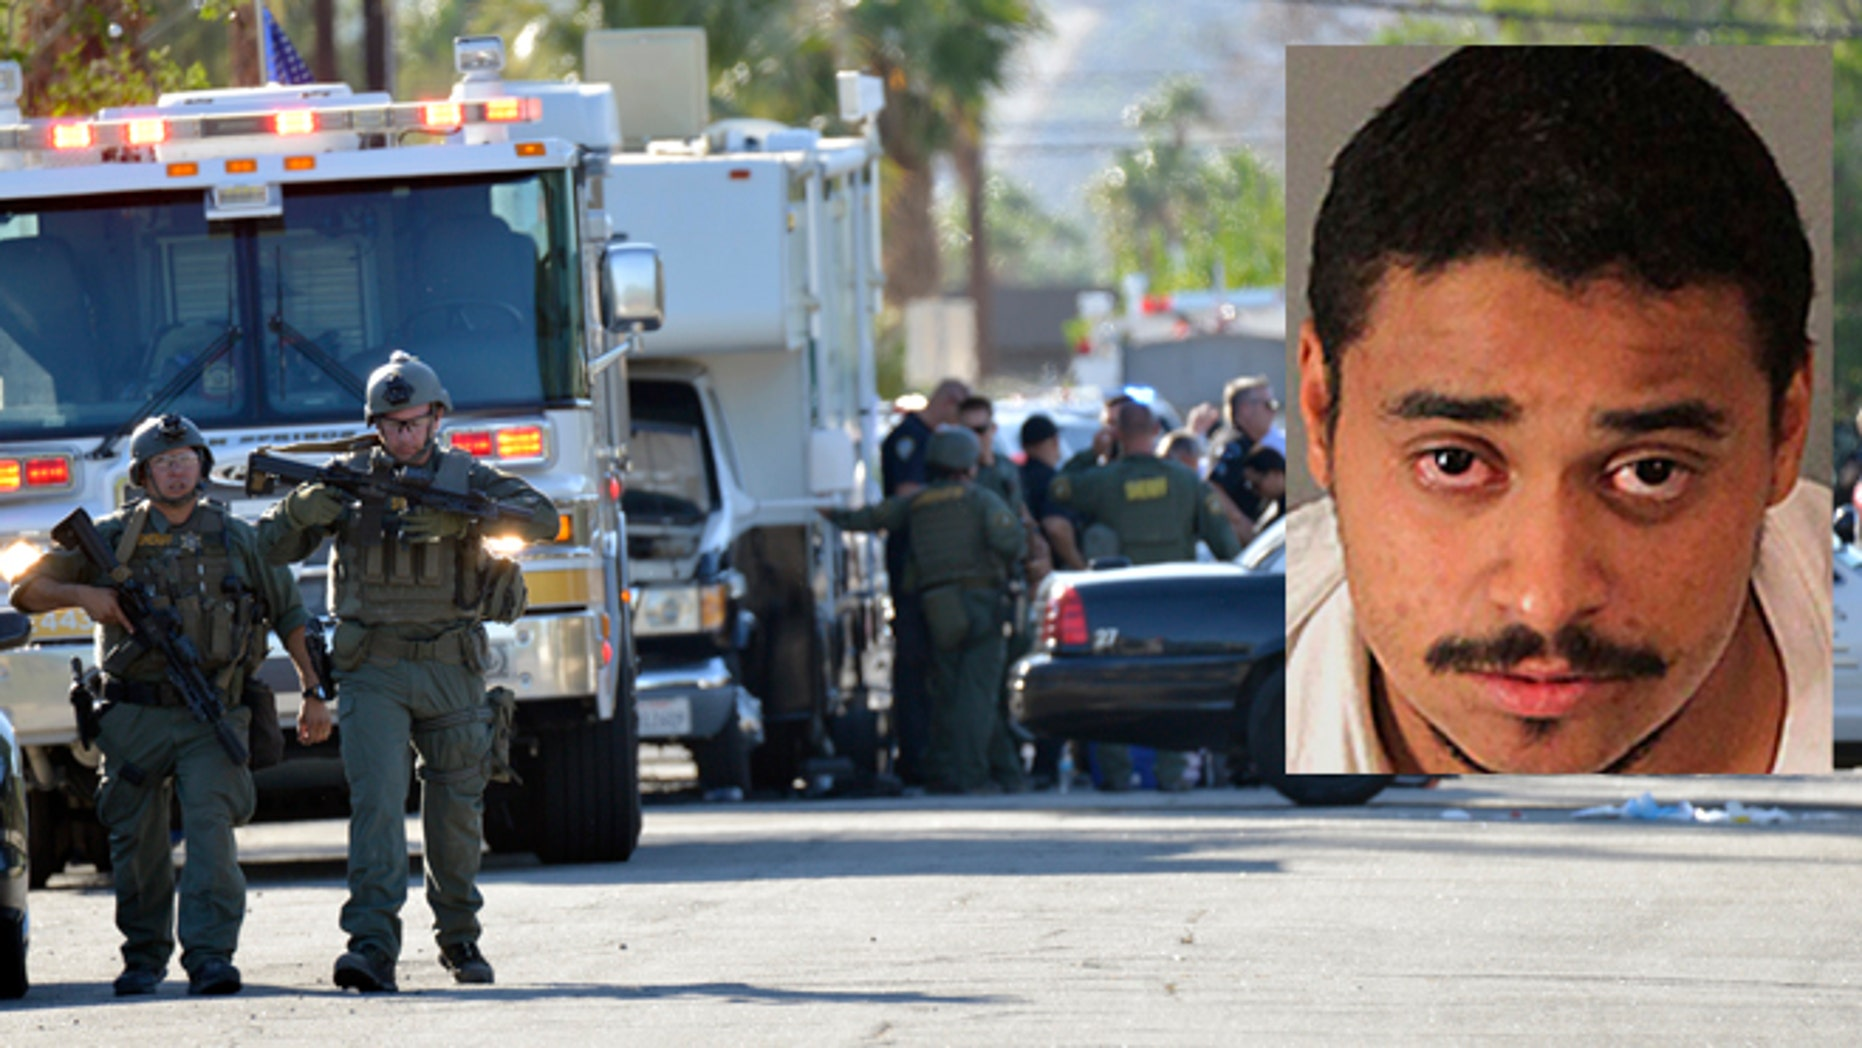 Riverside Country Sheriffs Deputies stand near the scene of a shooting in Palm Springs, Calif., Saturday, Oct. 8, 2016. Insert: Photo released by the Riverside Country Sheriff's Department shows suspect John Felix. (AP/Riverside County Sheriff's Department via AP)